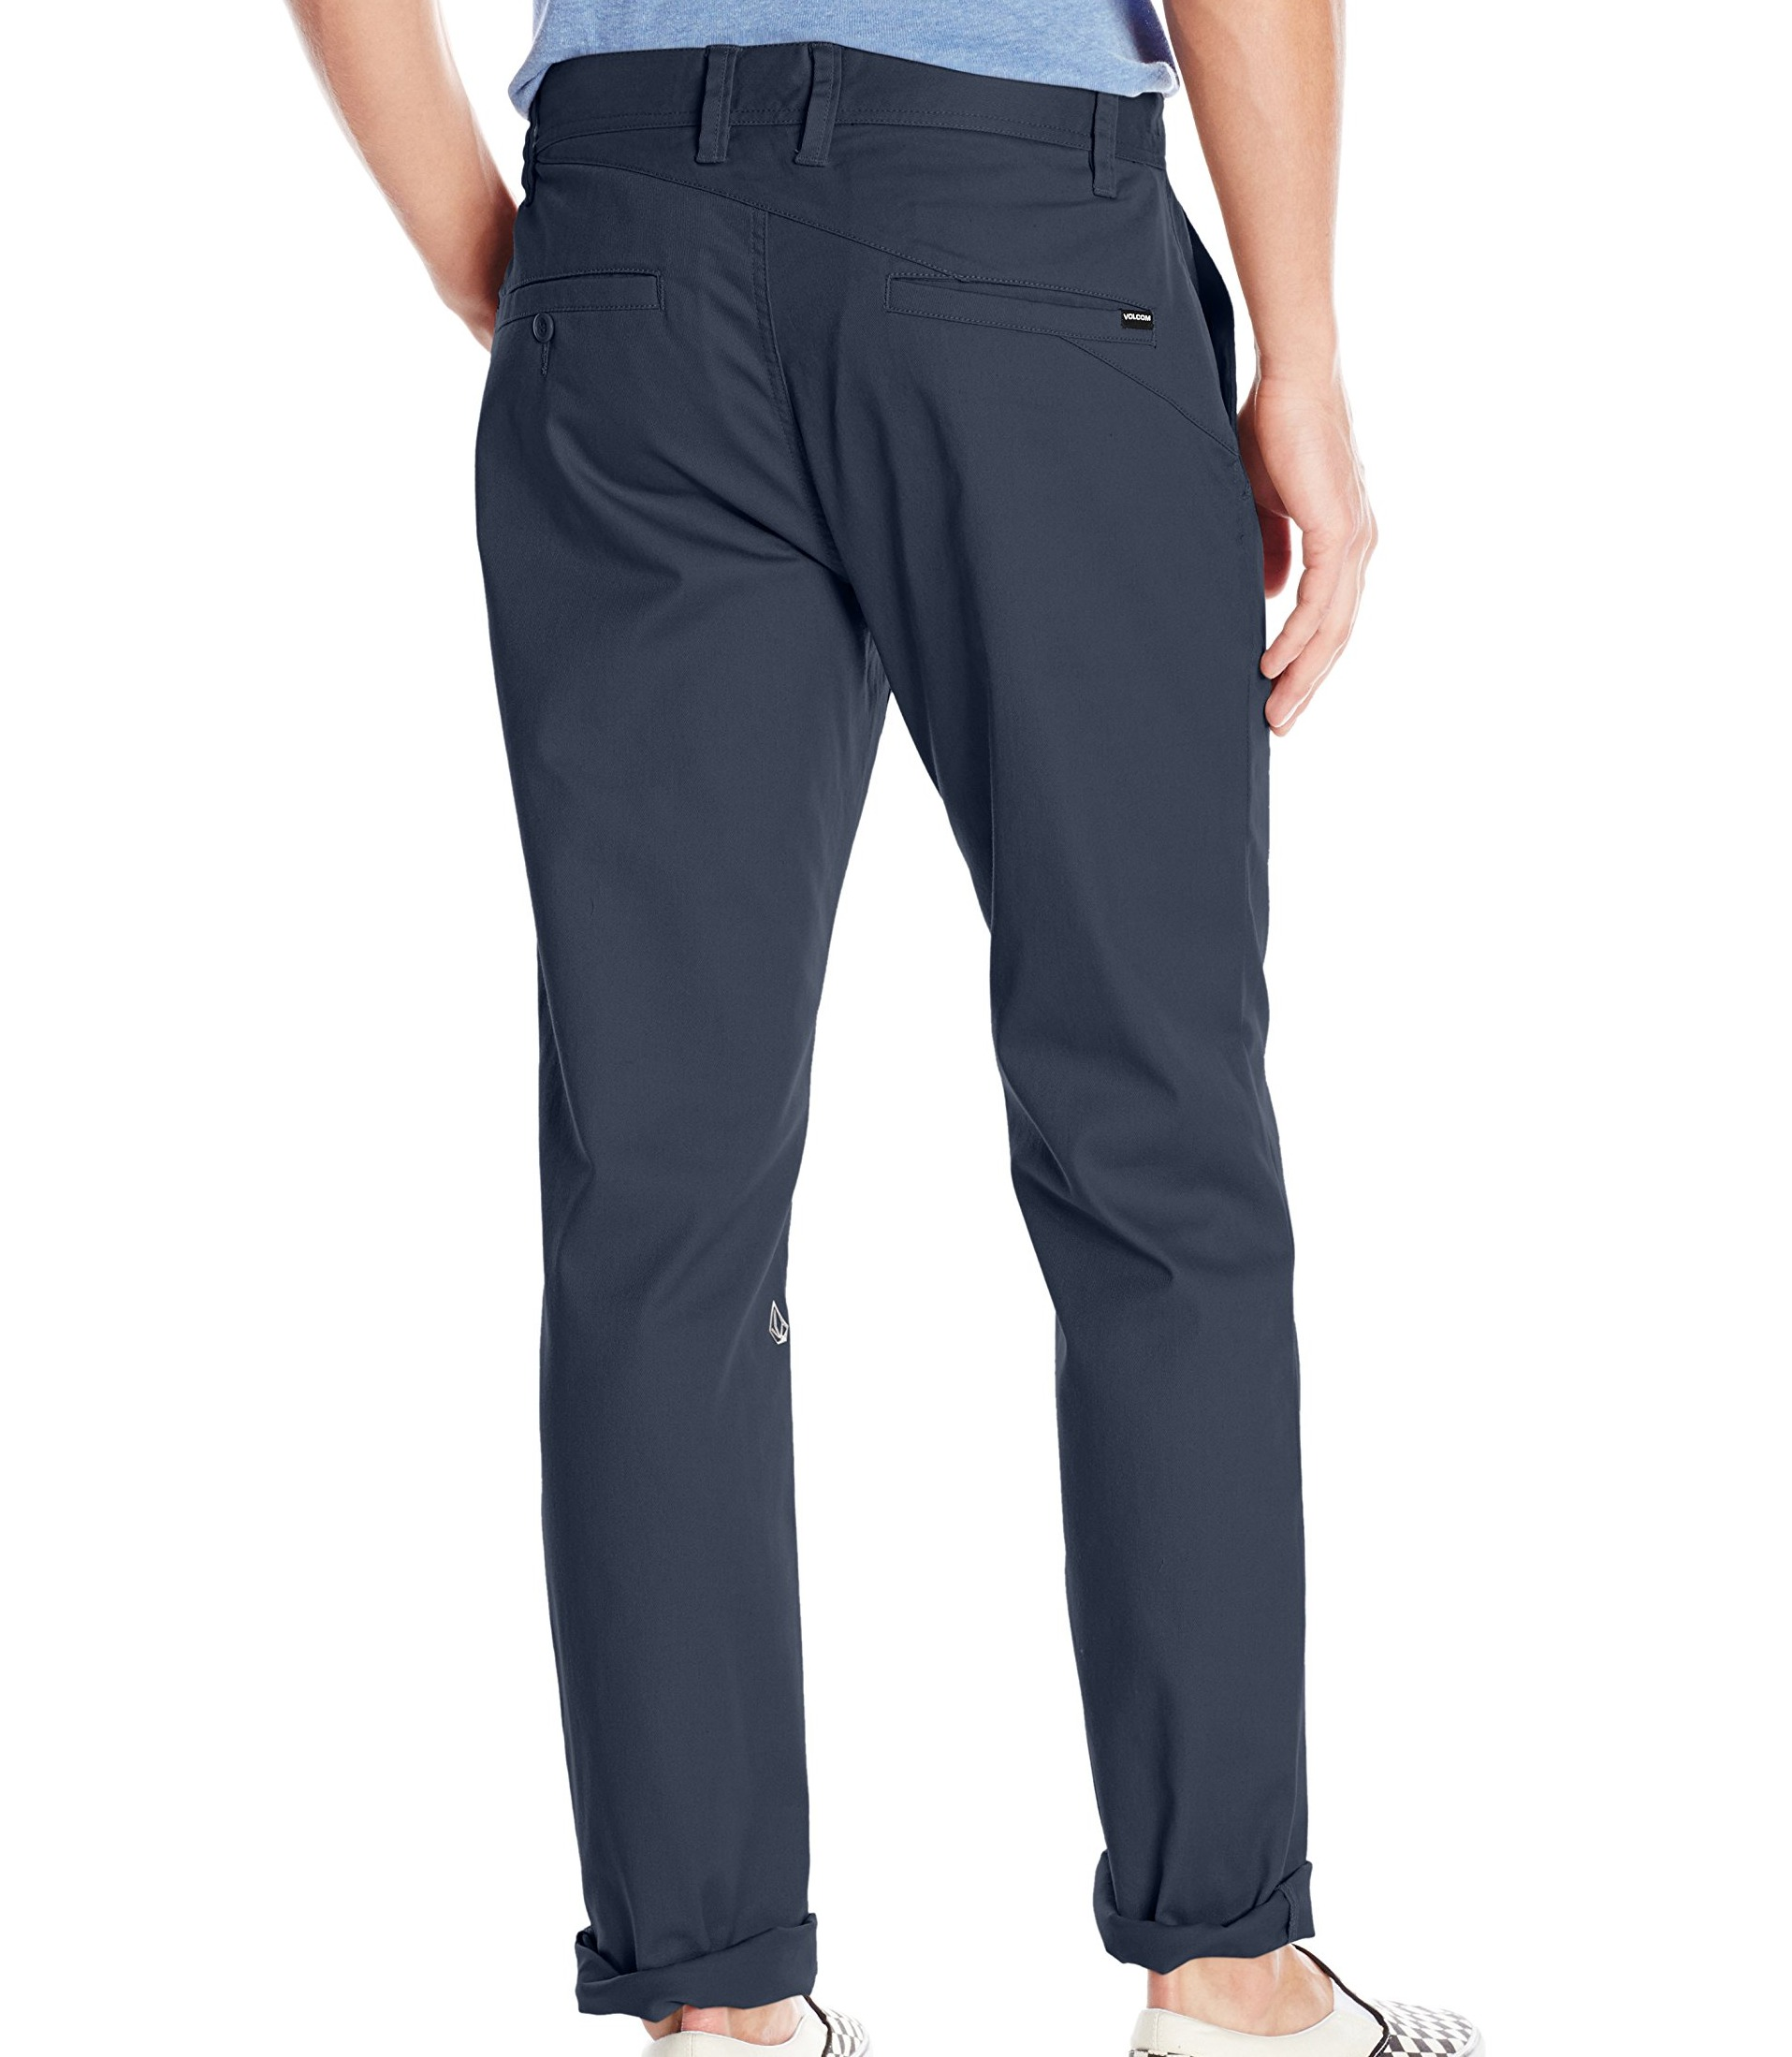 Volcom-Mens-Pants-Blue-Size-32X30-Modern-Fit-Zip-Fly-Chinos-Stretch thumbnail 2